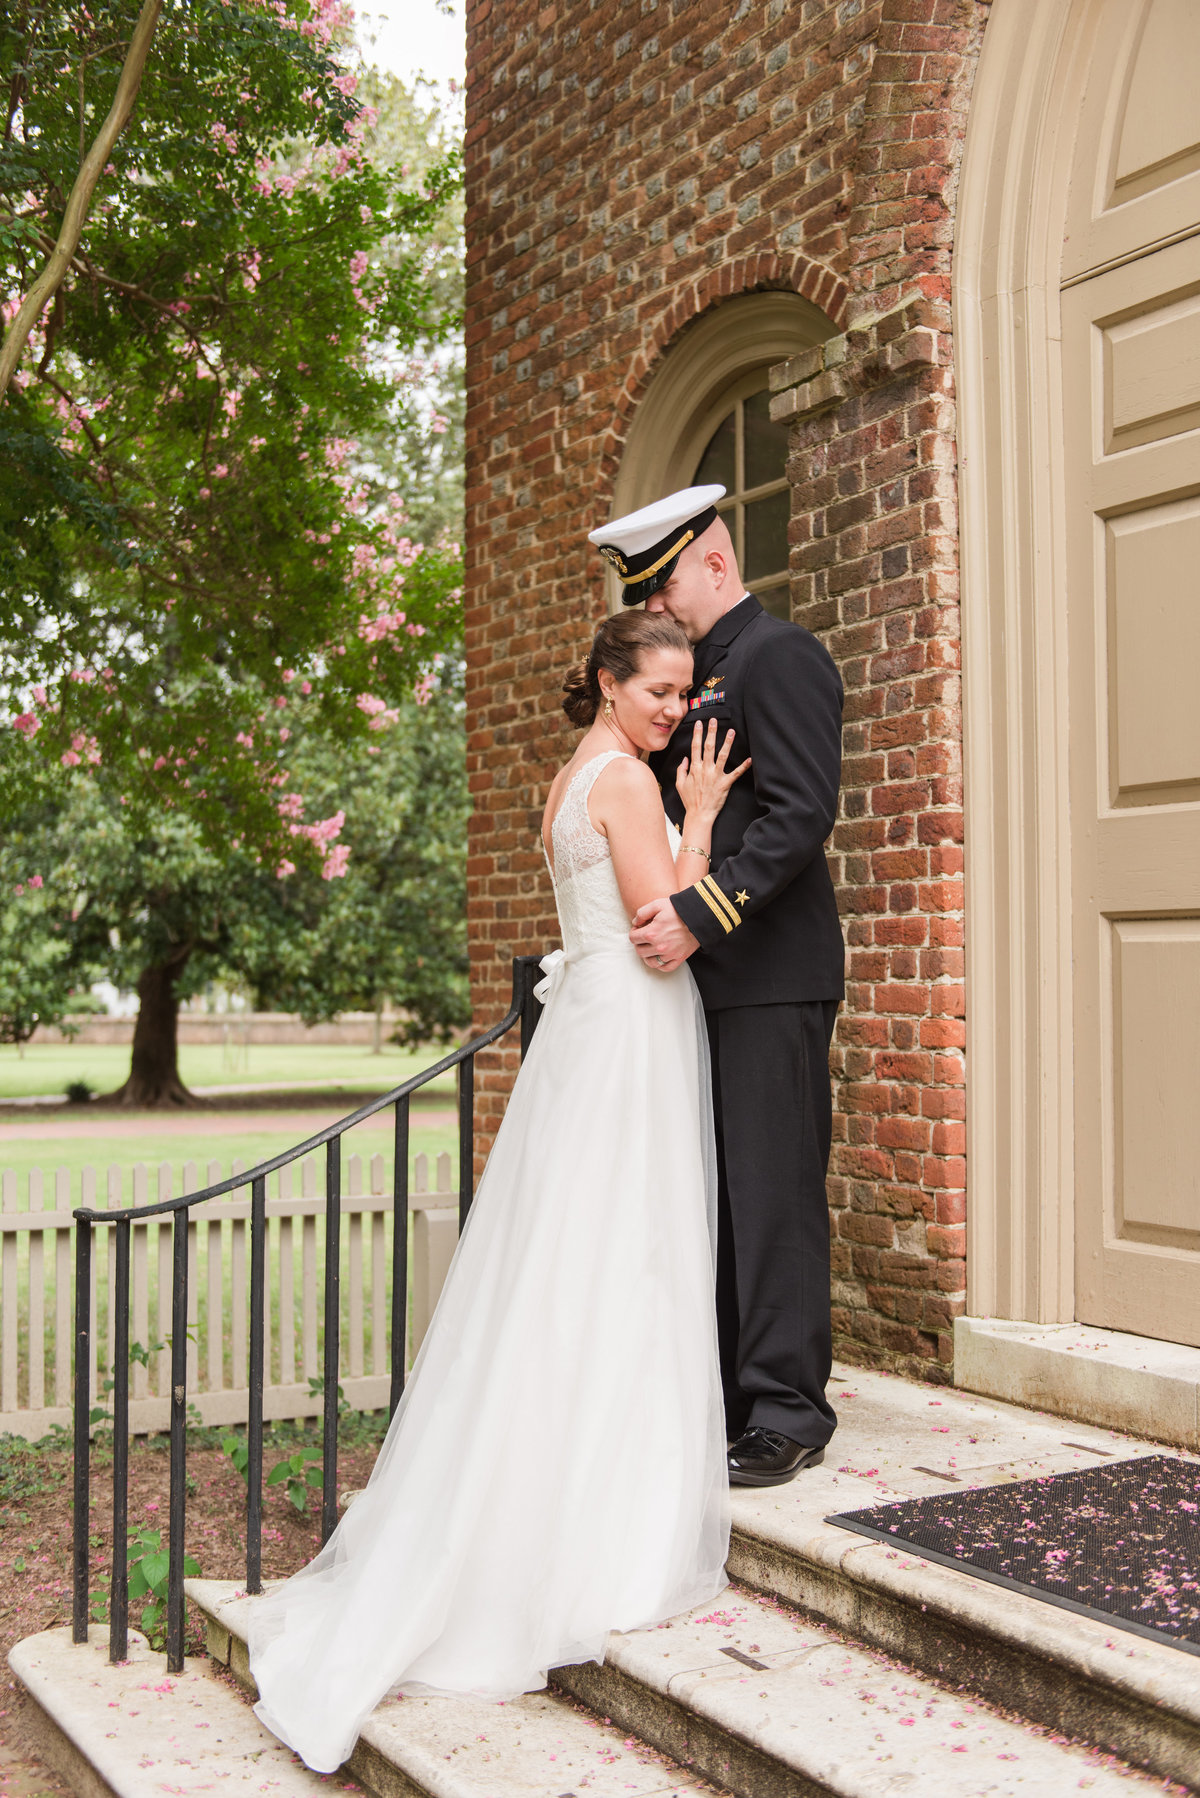 Meredith Ryncarz Photography Wedding Engagement Lifestyle Heirloom Legacy Photographer Georgia Alabama Destination Military55